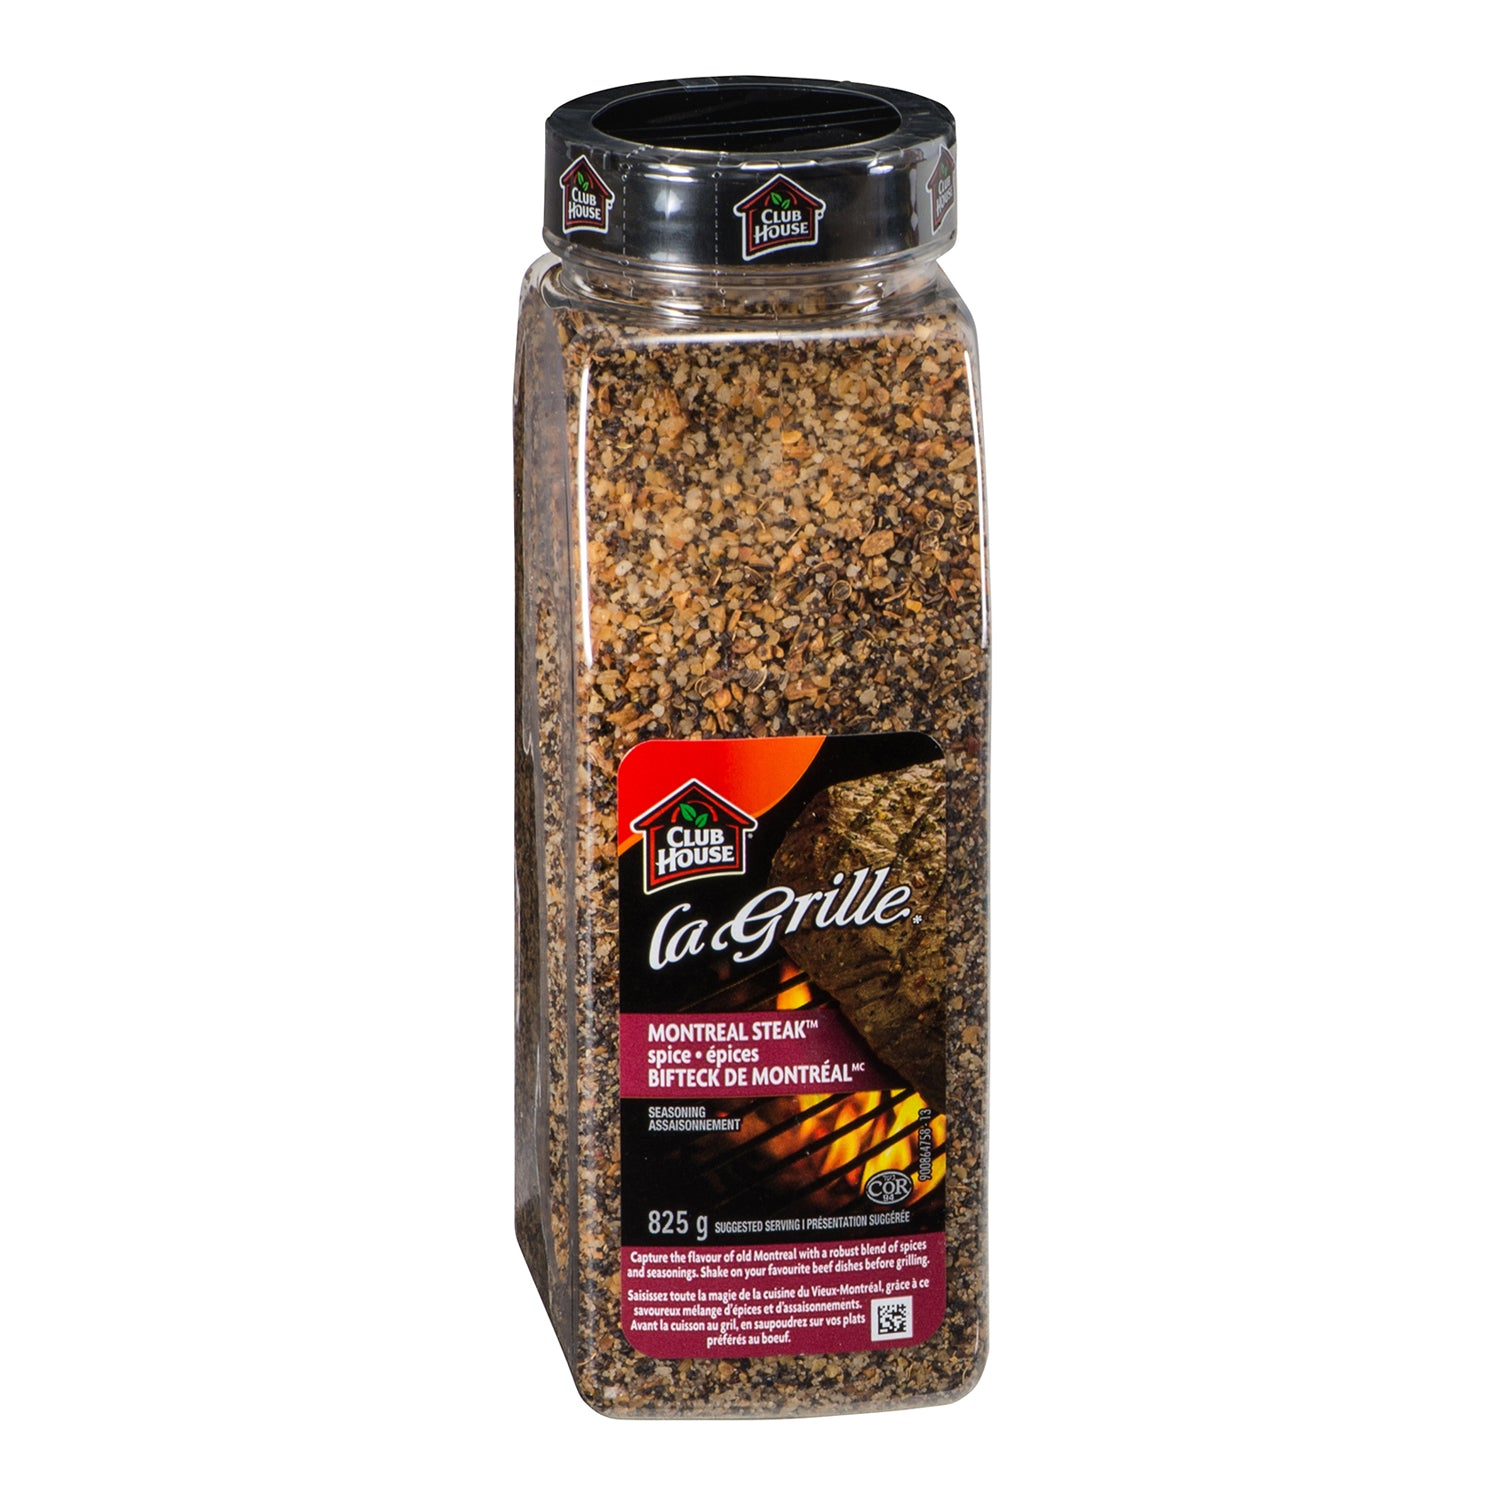 Club House Montreal Steak Spice La Grille 825 g - 1 Pack [$14.49/each]